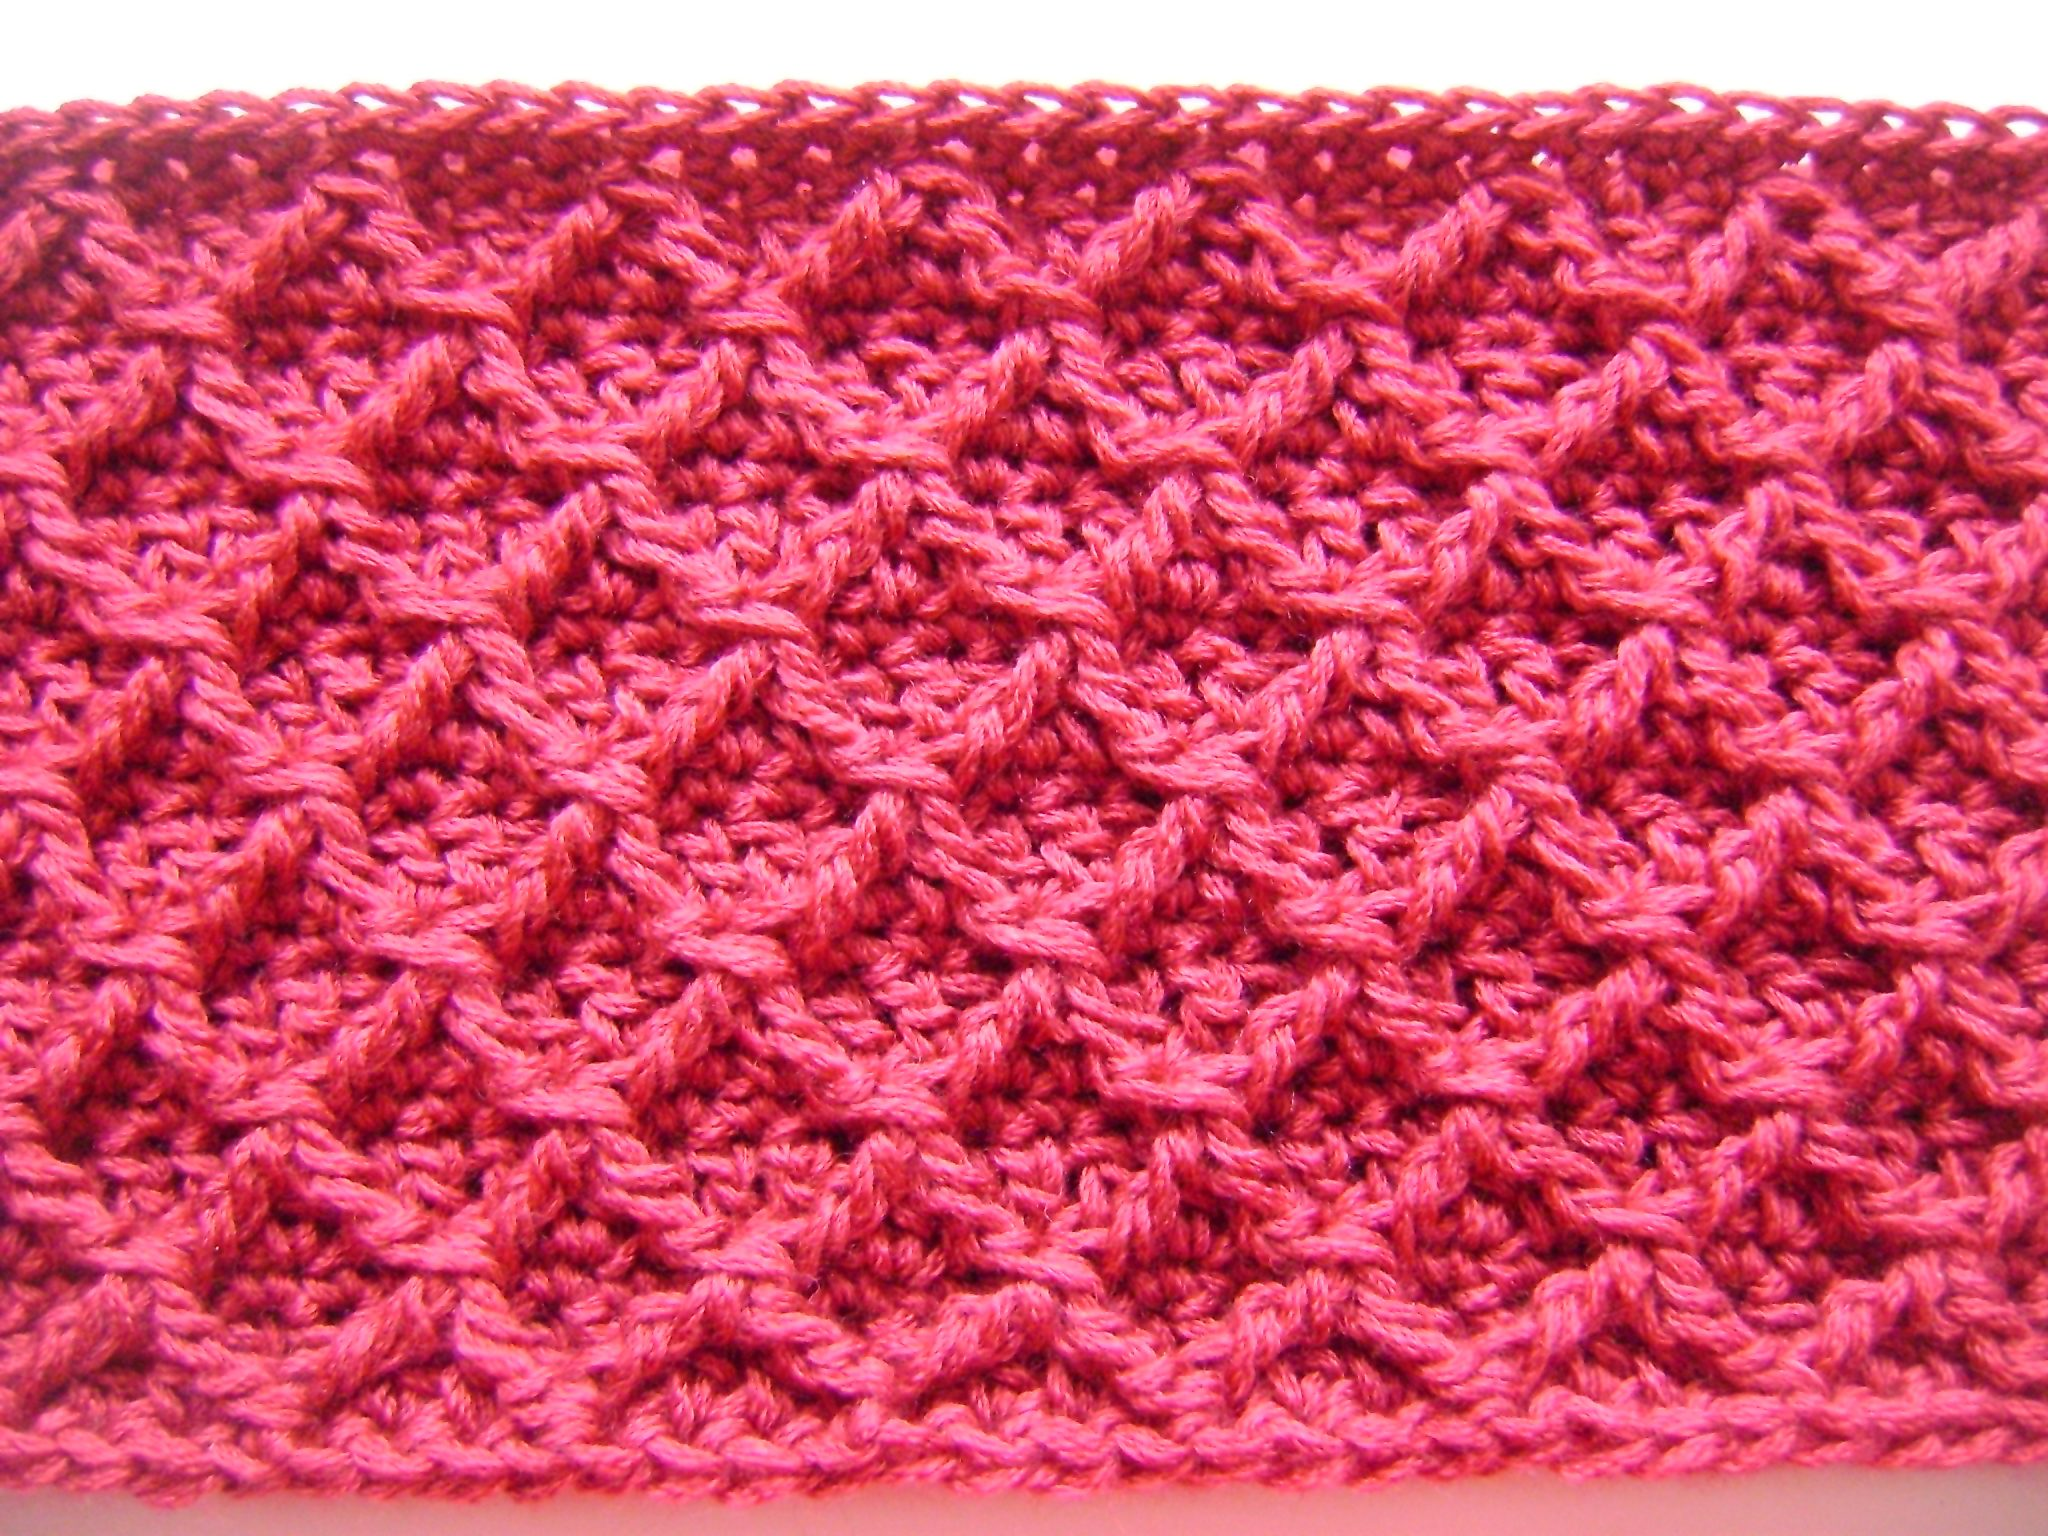 Crochet Patterns Images : closeup of the stitch pattern, so you can get an idea of how it ...